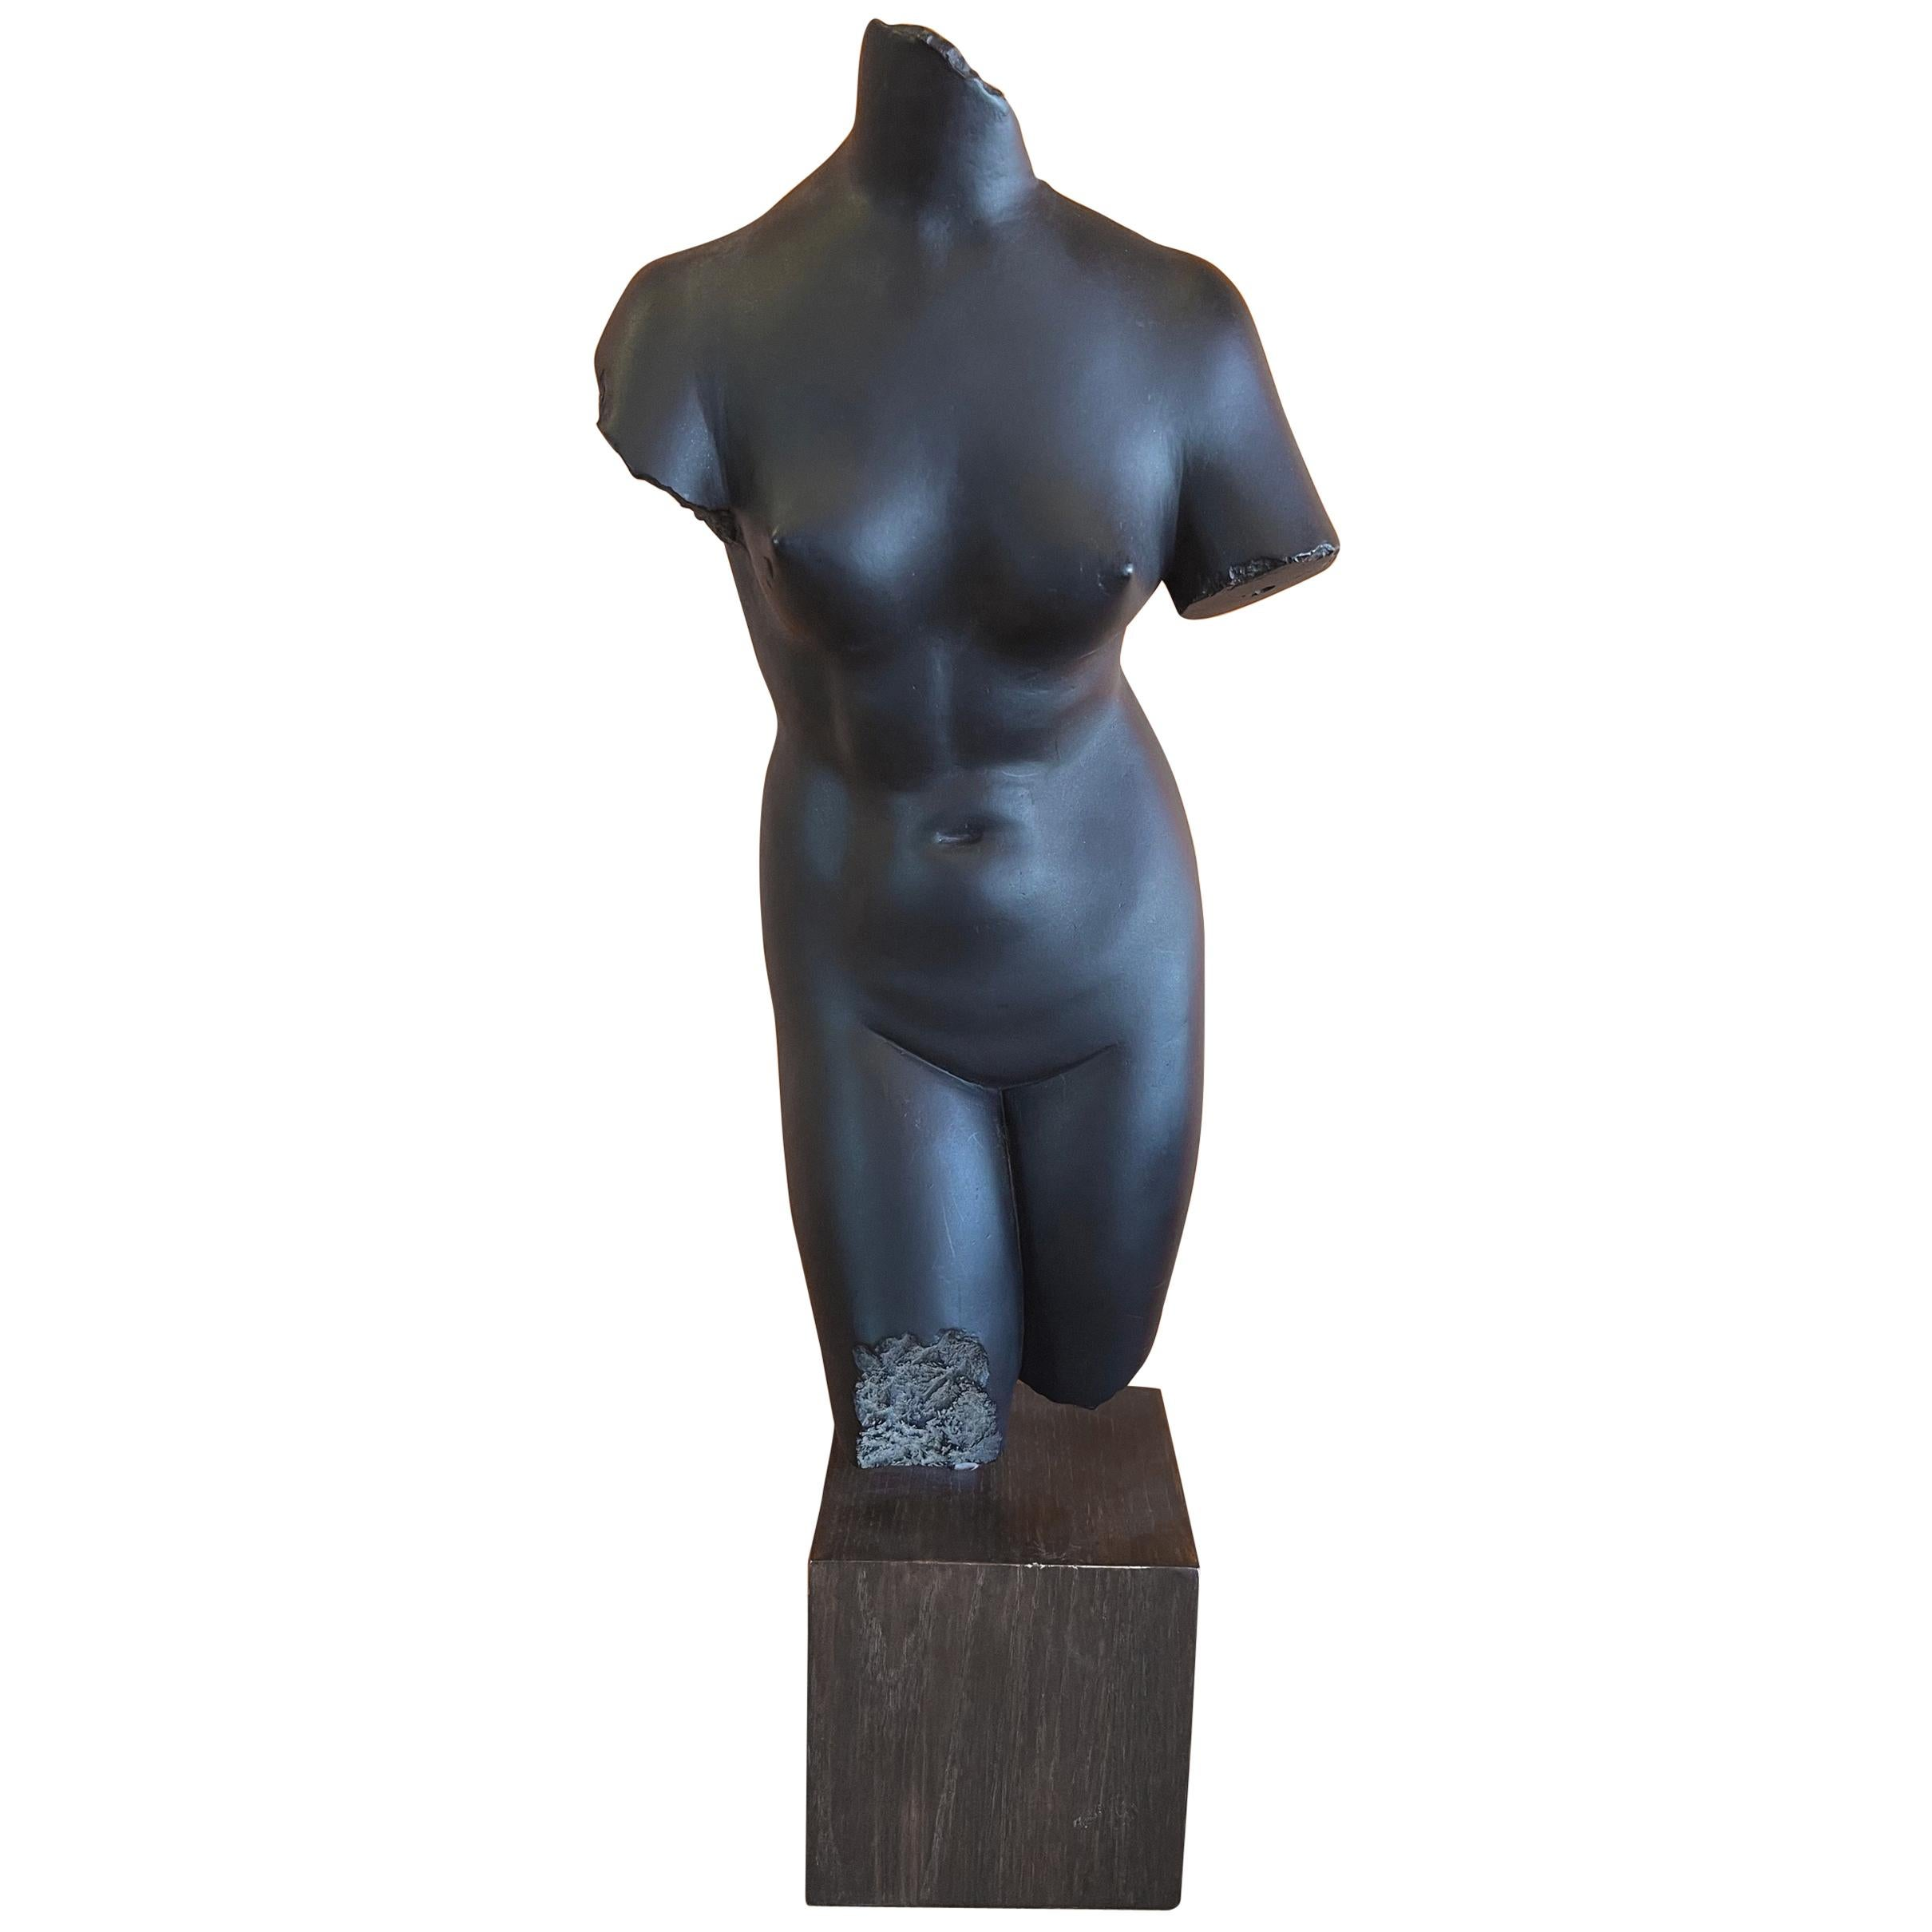 Cast Resin Aphrodite Anadyomene Sculpture on Base from the MOMA Collection